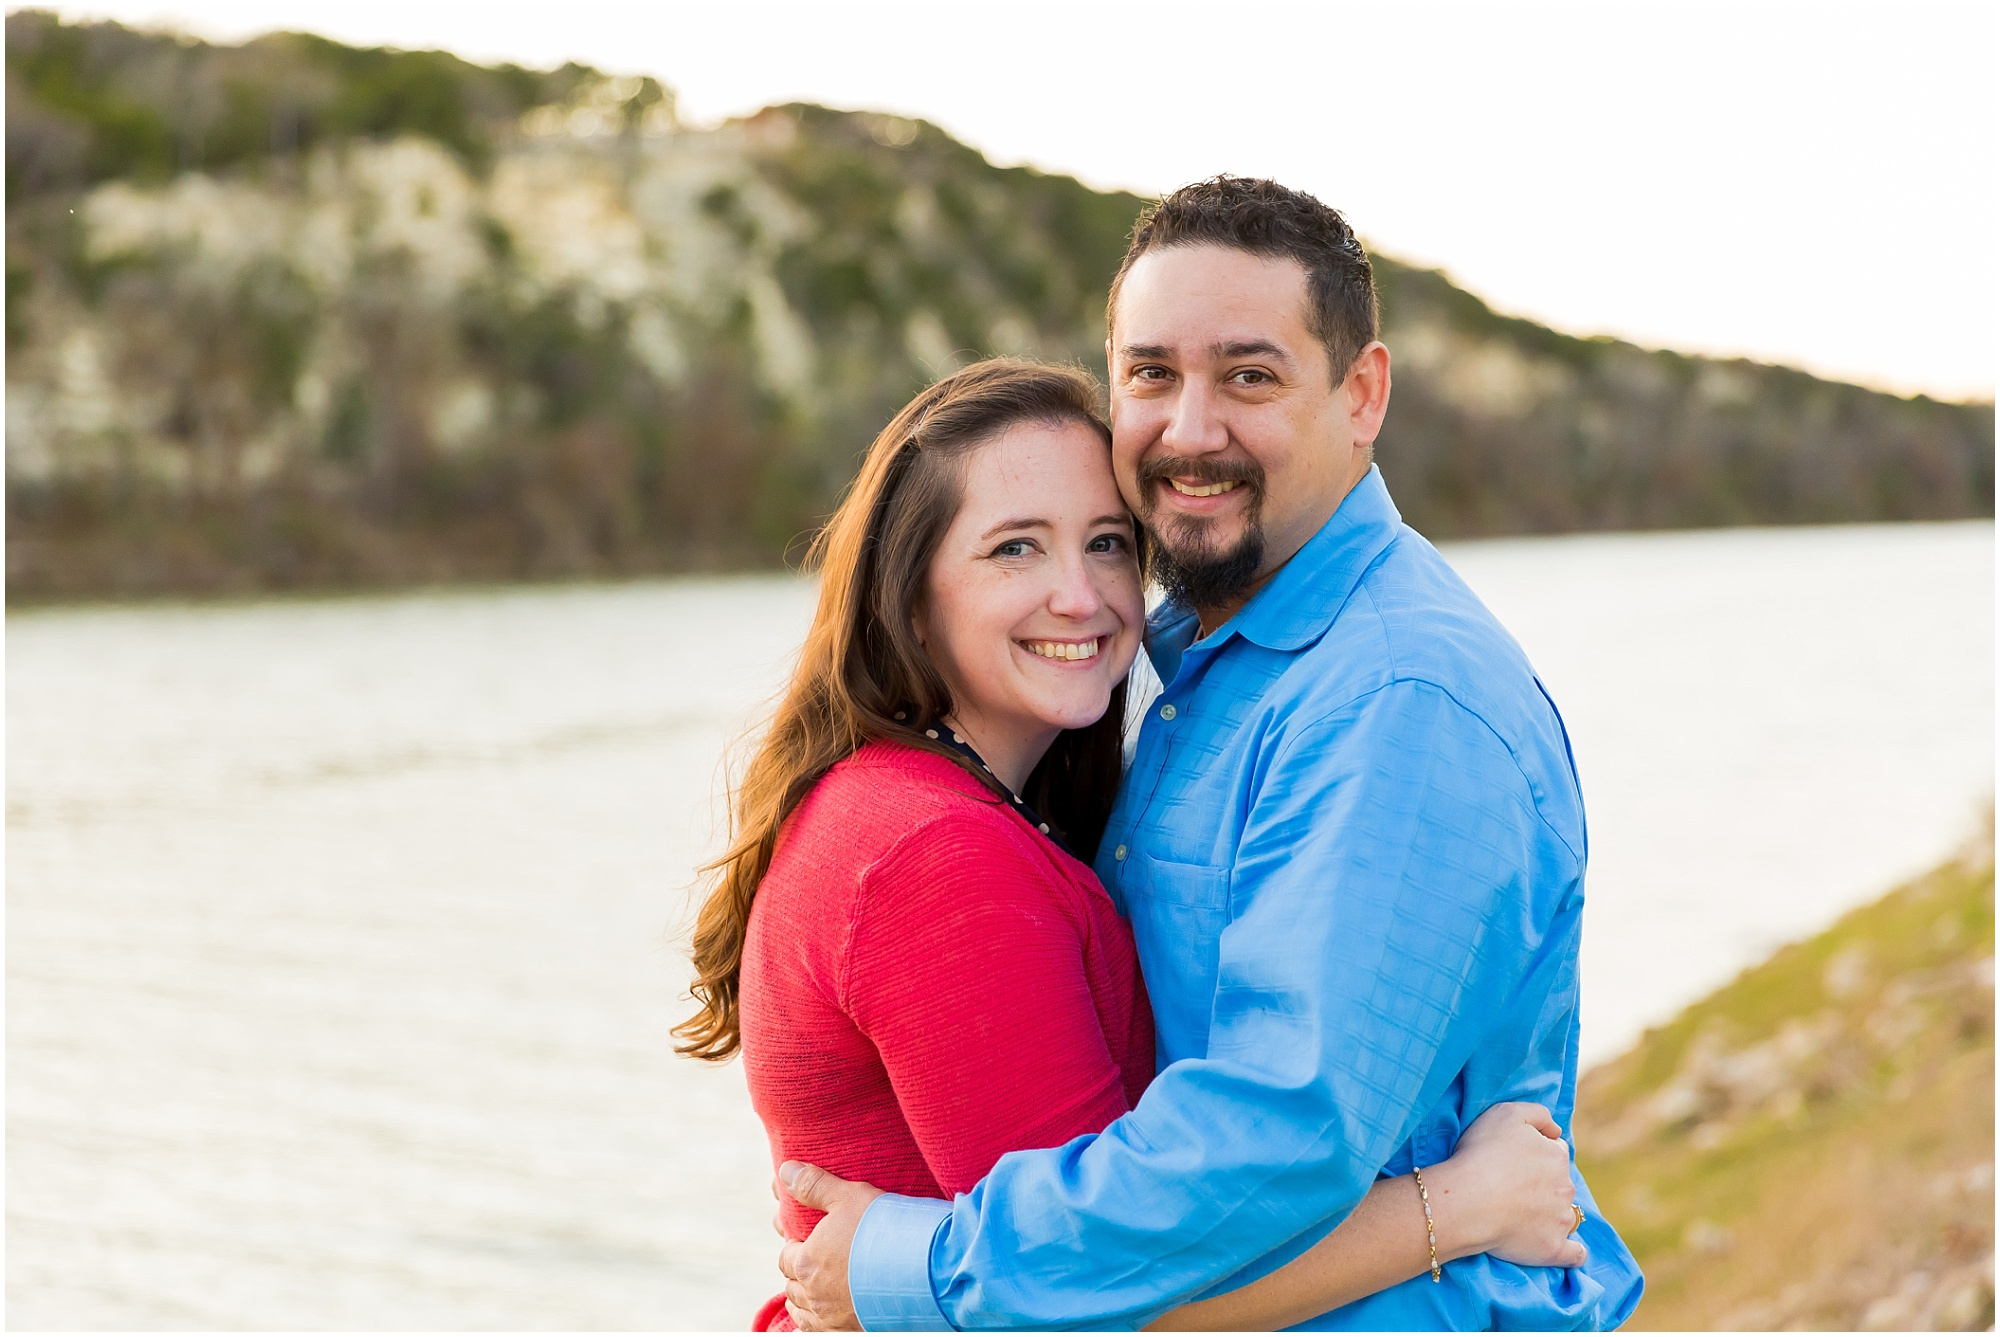 A couple smiles at the camera during their engagement photos in Cameron Park, Waco, Texas - Jason & Melaina Photography - www.jasonandmelaina.com